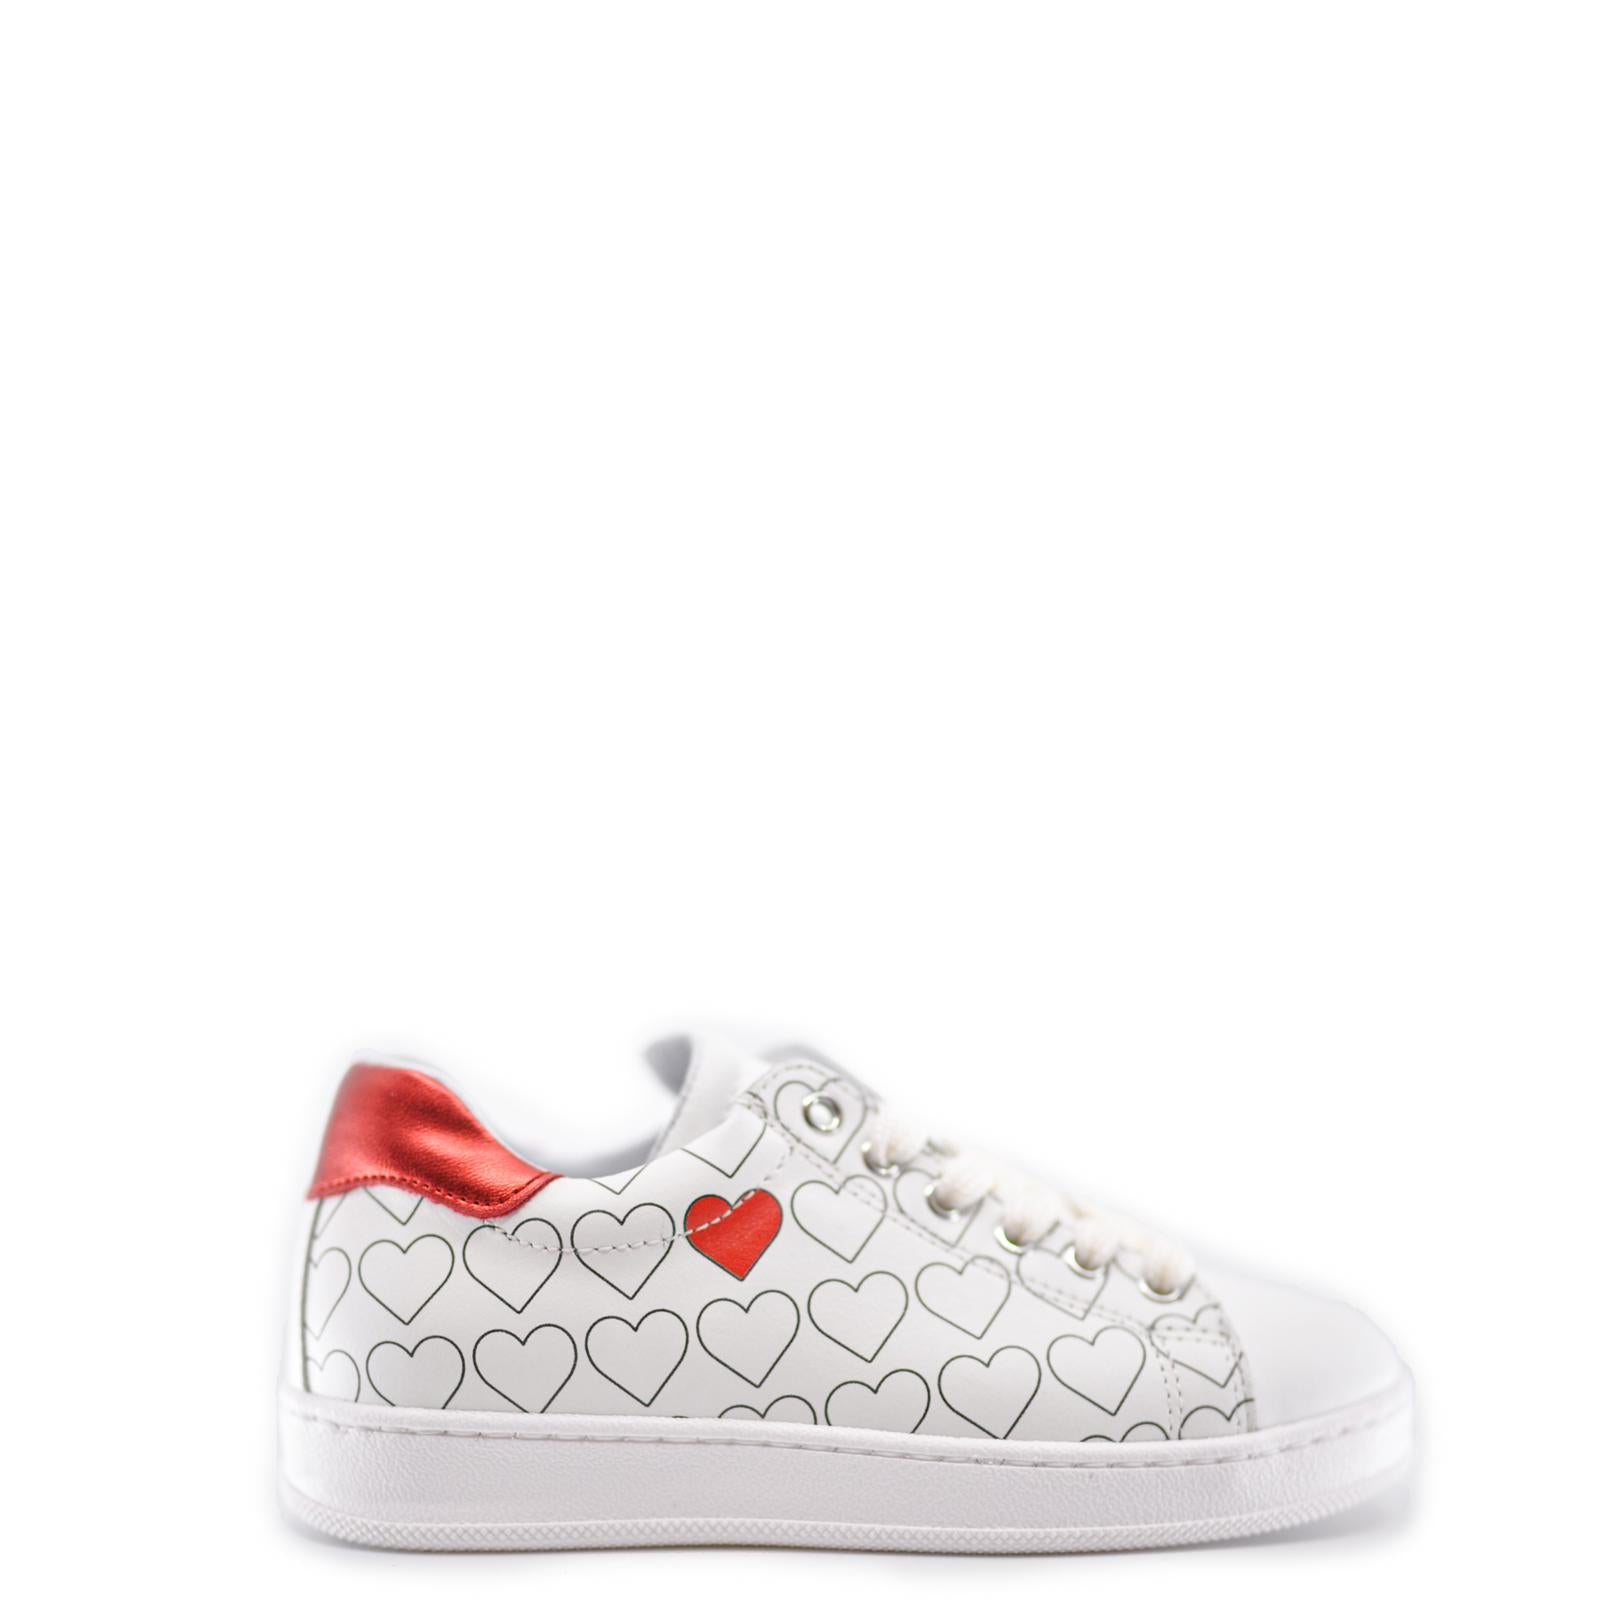 Atlanta Mocassin White and Red Heart Zipper Sneaker-Tassel Children Shoes